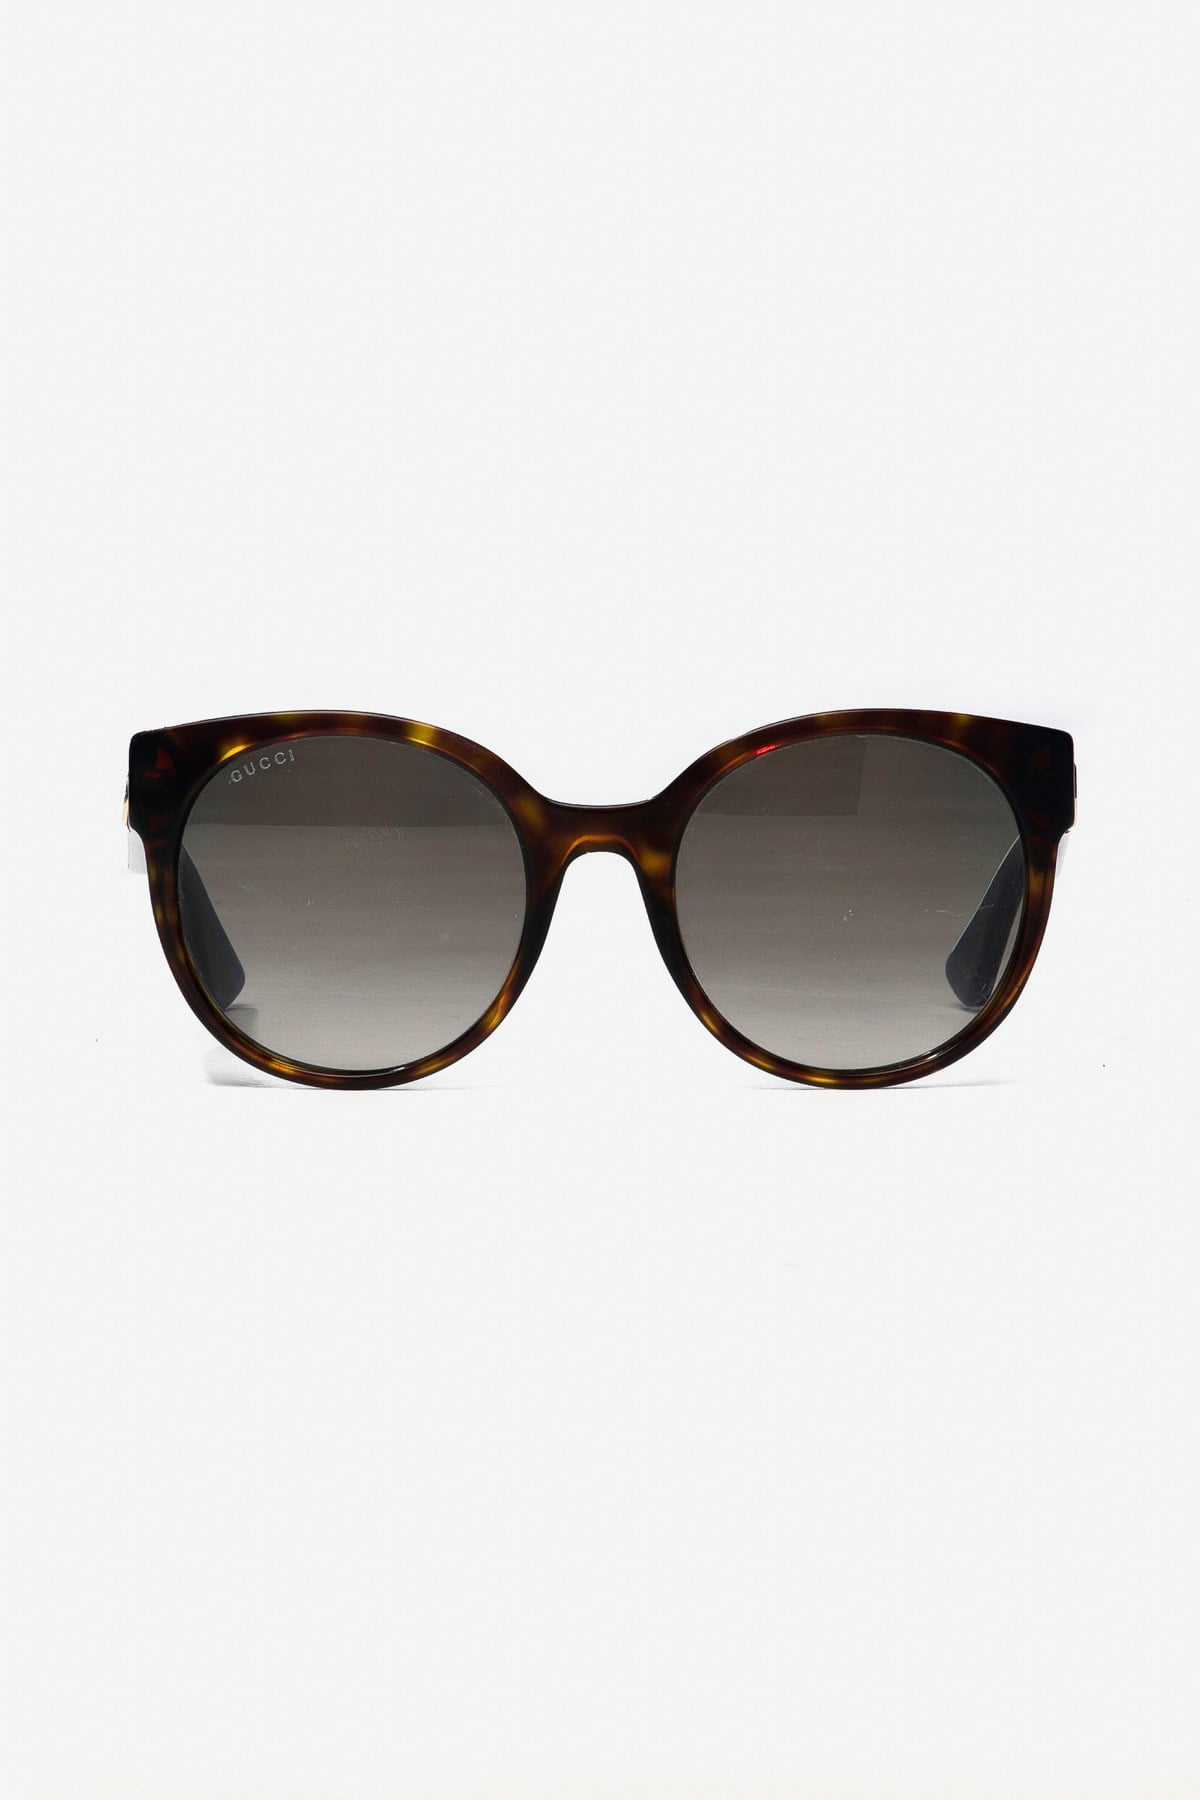 GG CAT-EYE SUNGLASSES